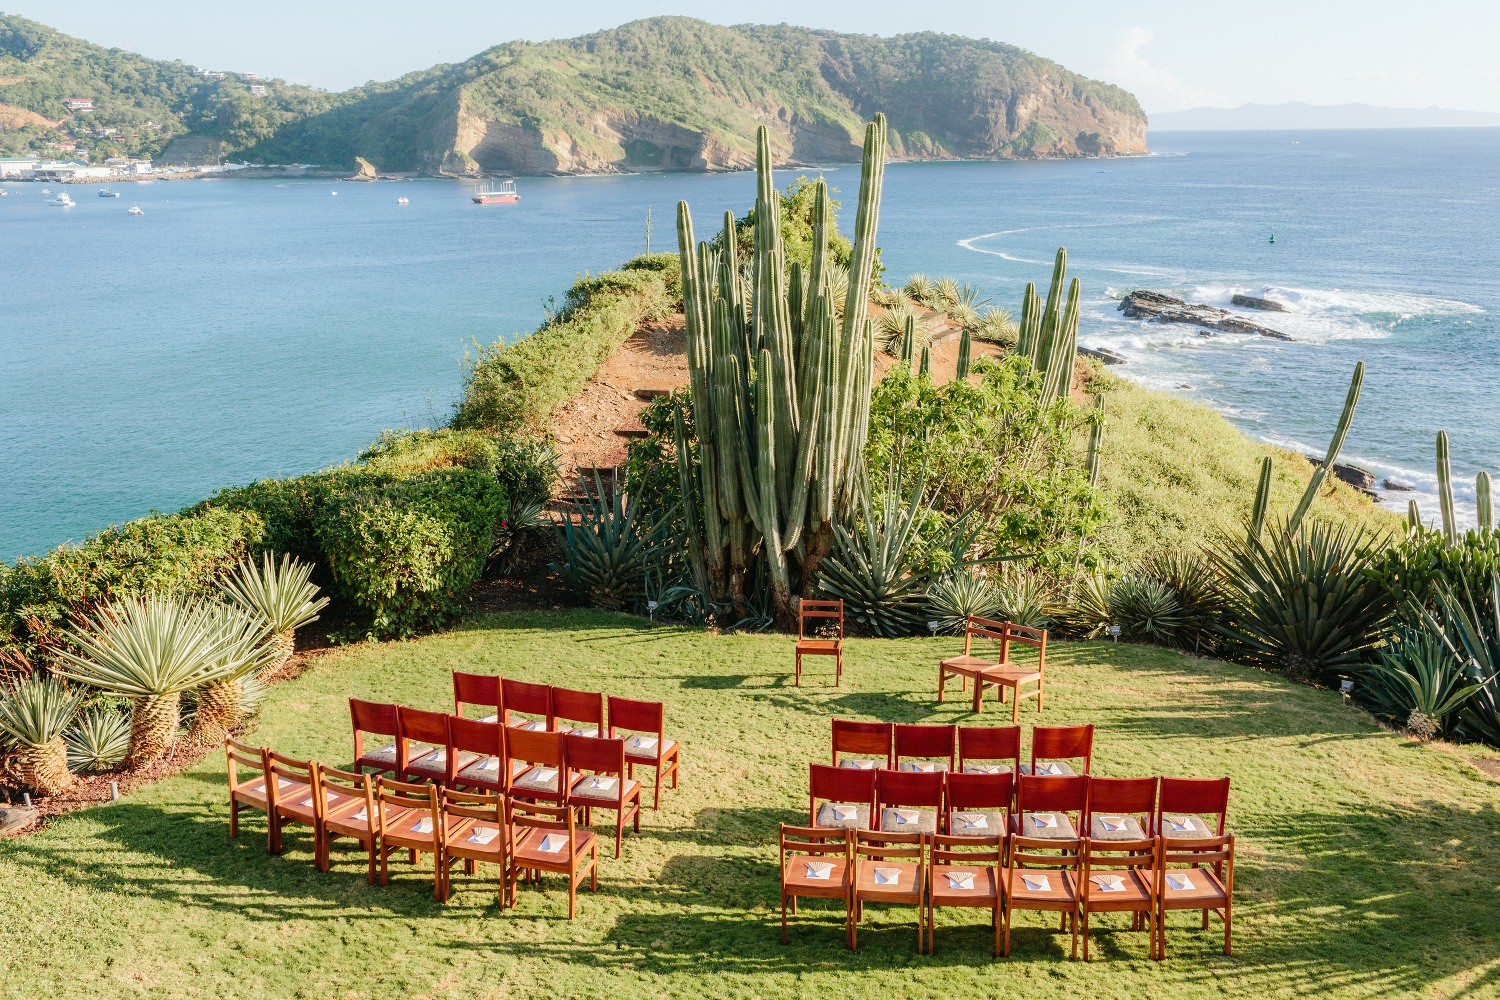 Best wedding venue on the beach in Nicaragua